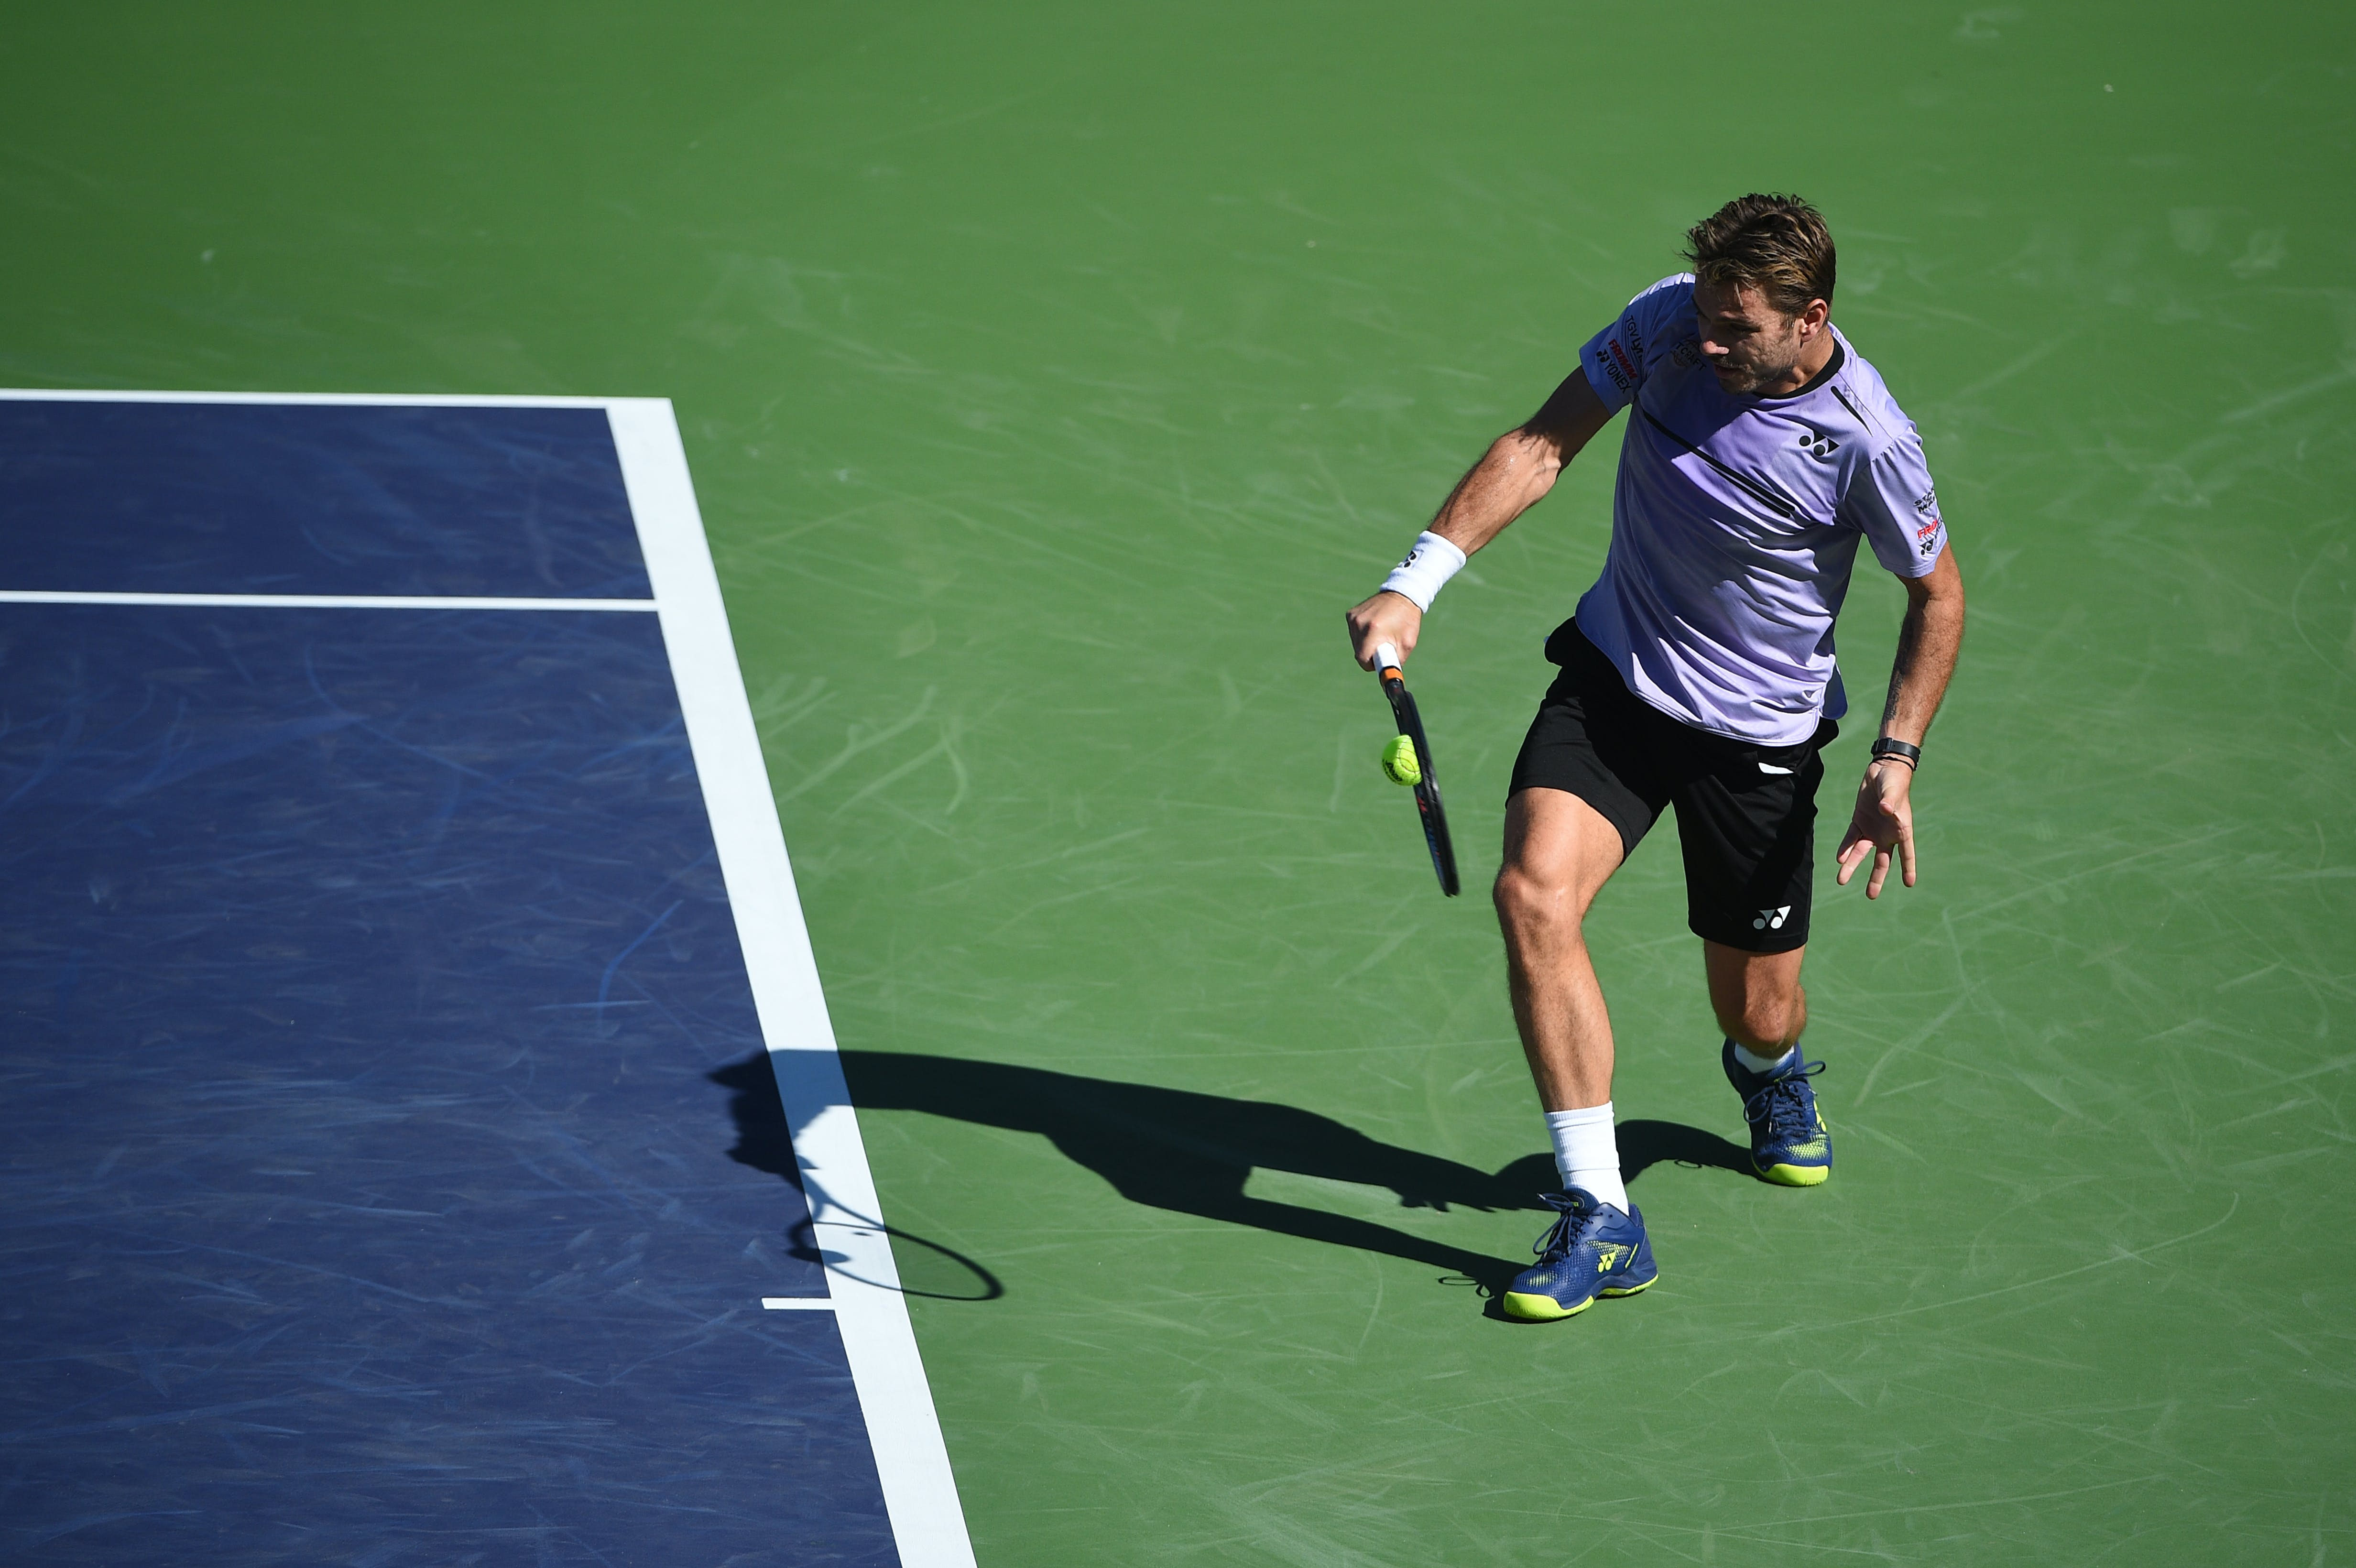 Stan Wawrinka is ready for the clash against his friend RF.